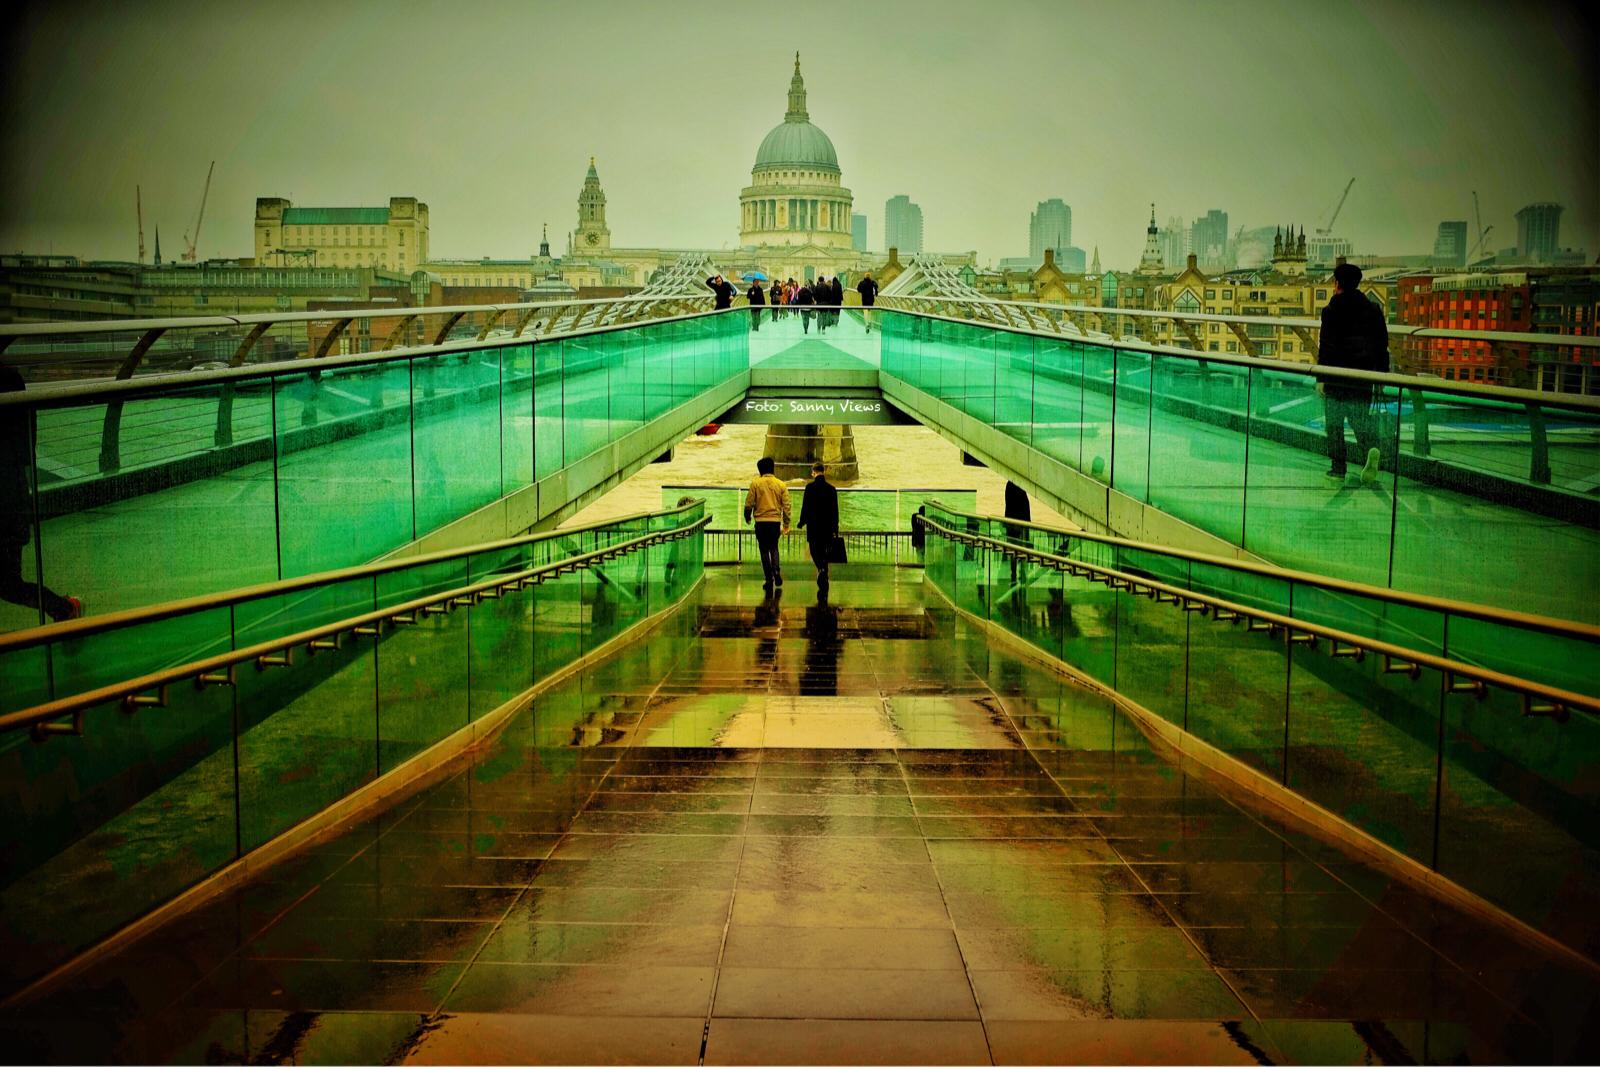 Green Lines to Saint Paul's Cathedra